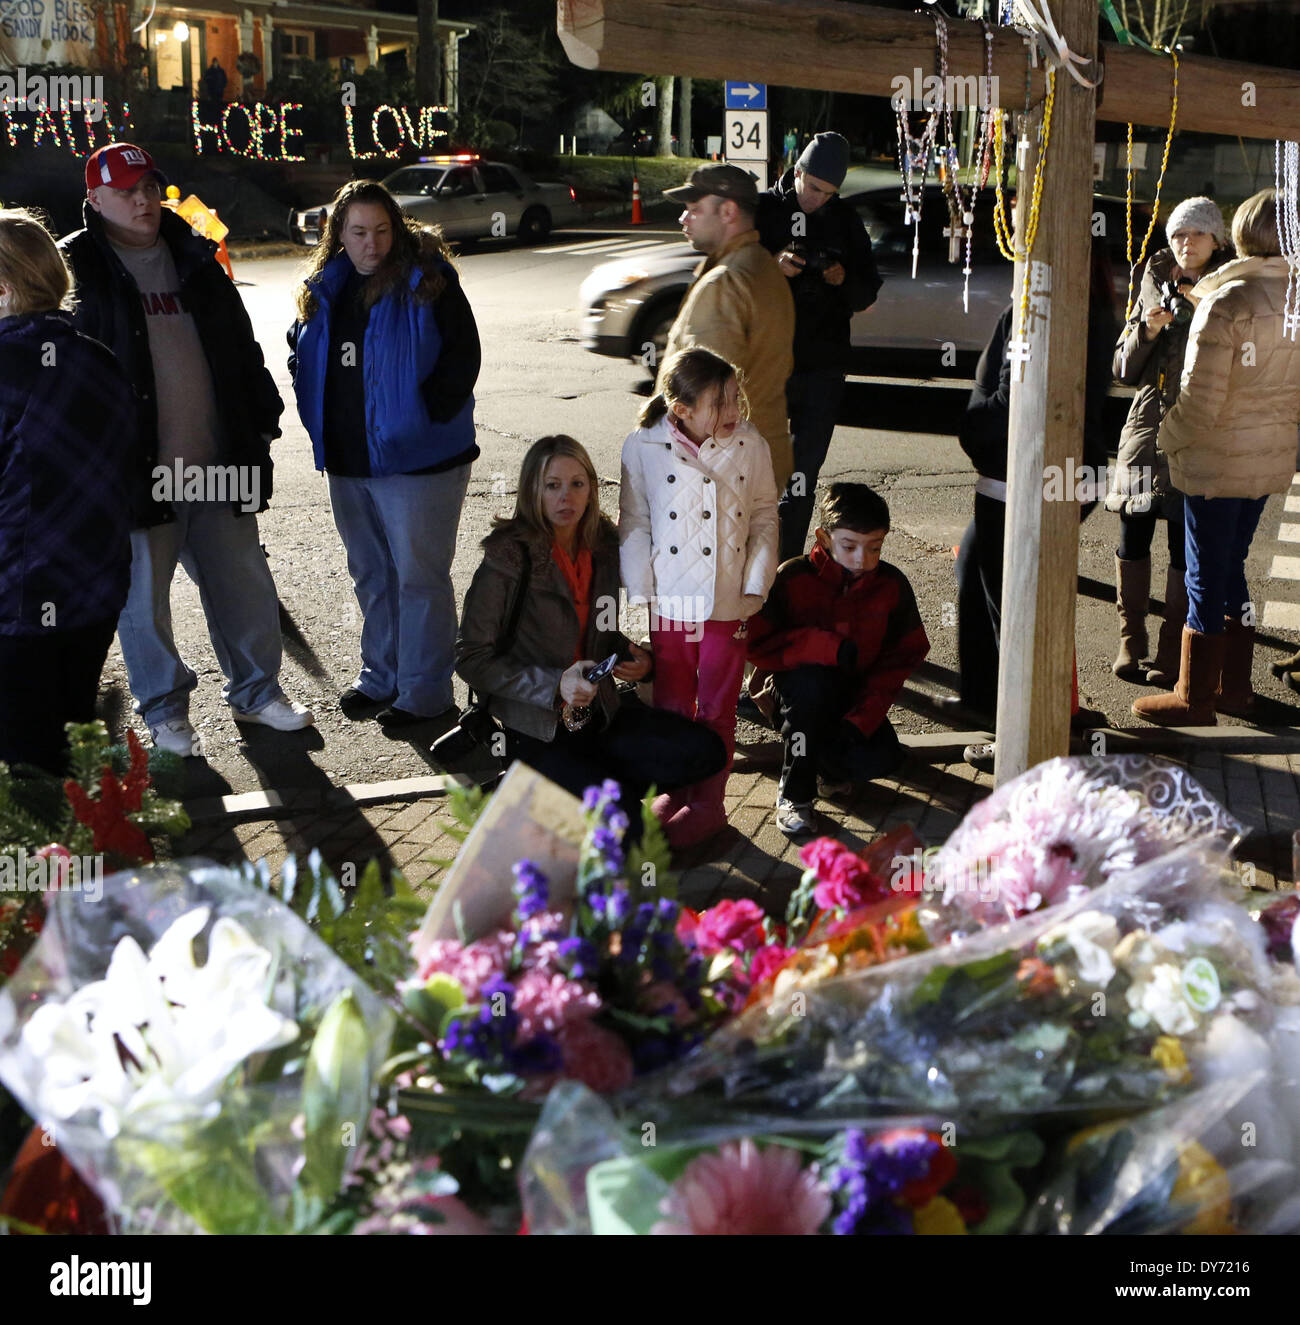 Fbi Releases Documents On 2012 Newtown School Shooting: Newtown Connecticut Stock Photos & Newtown Connecticut